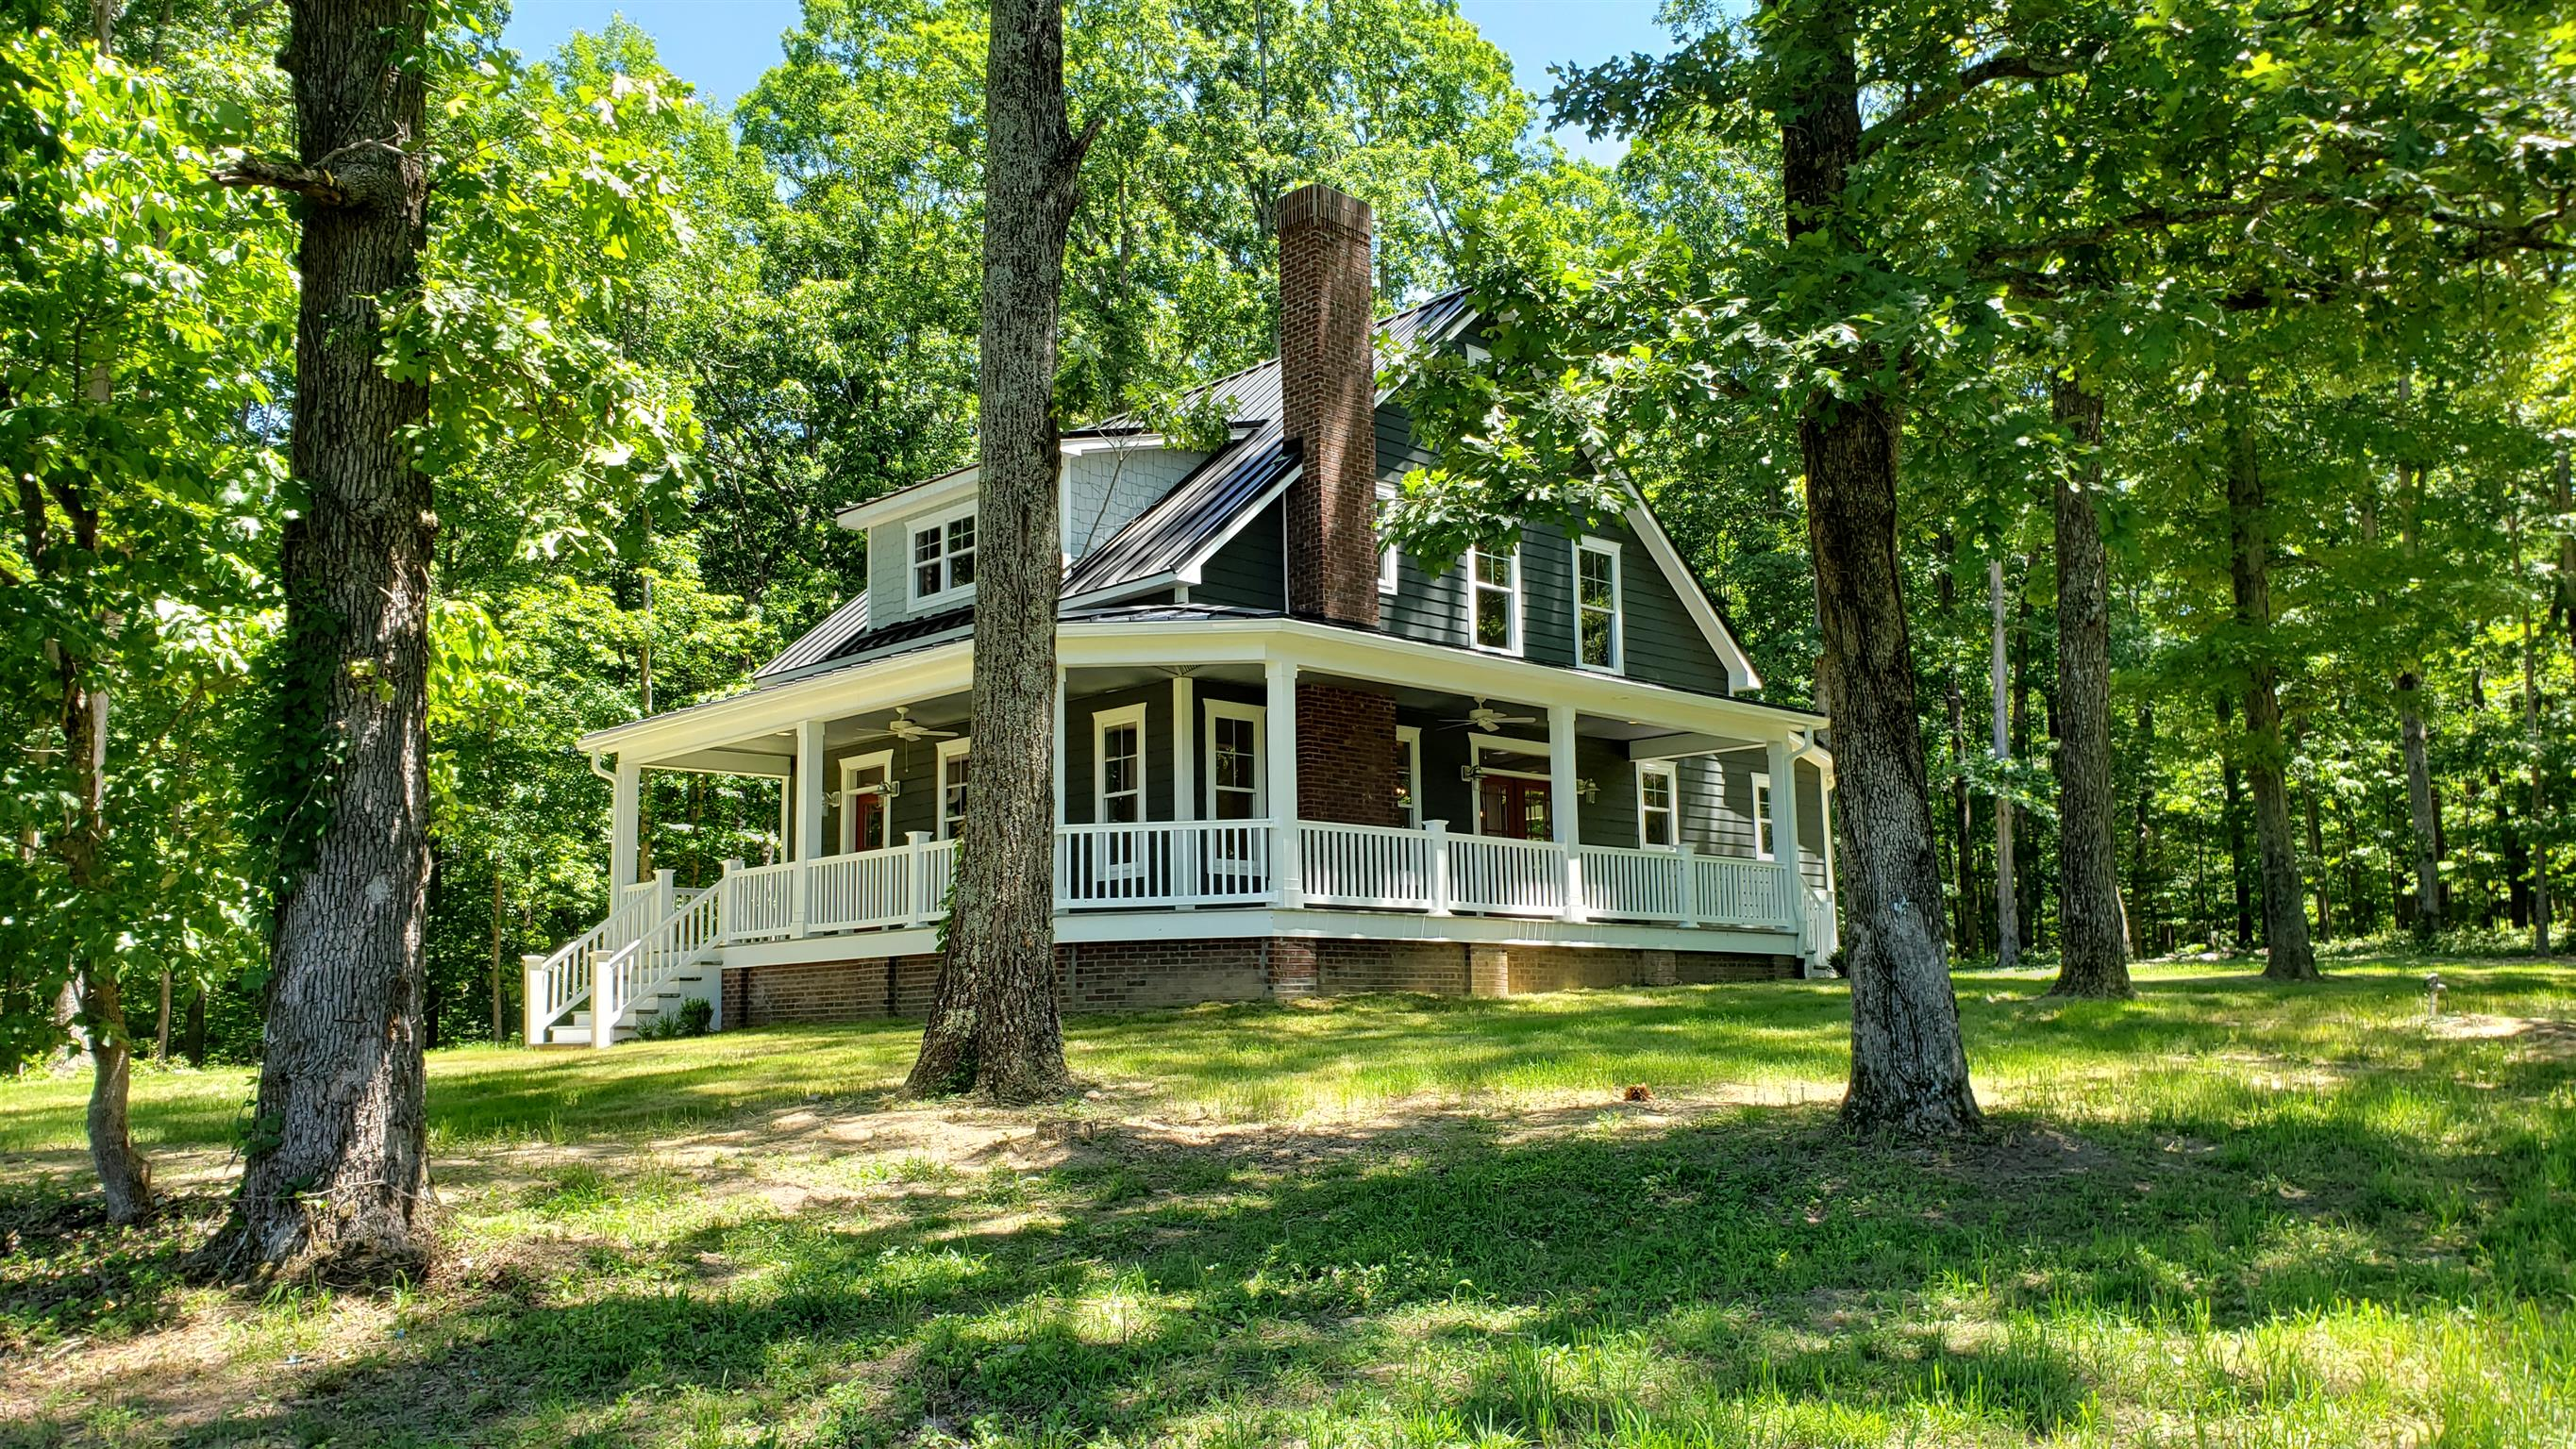 1267 Wades Branch Rd, Centerville, TN 37033 - Centerville, TN real estate listing